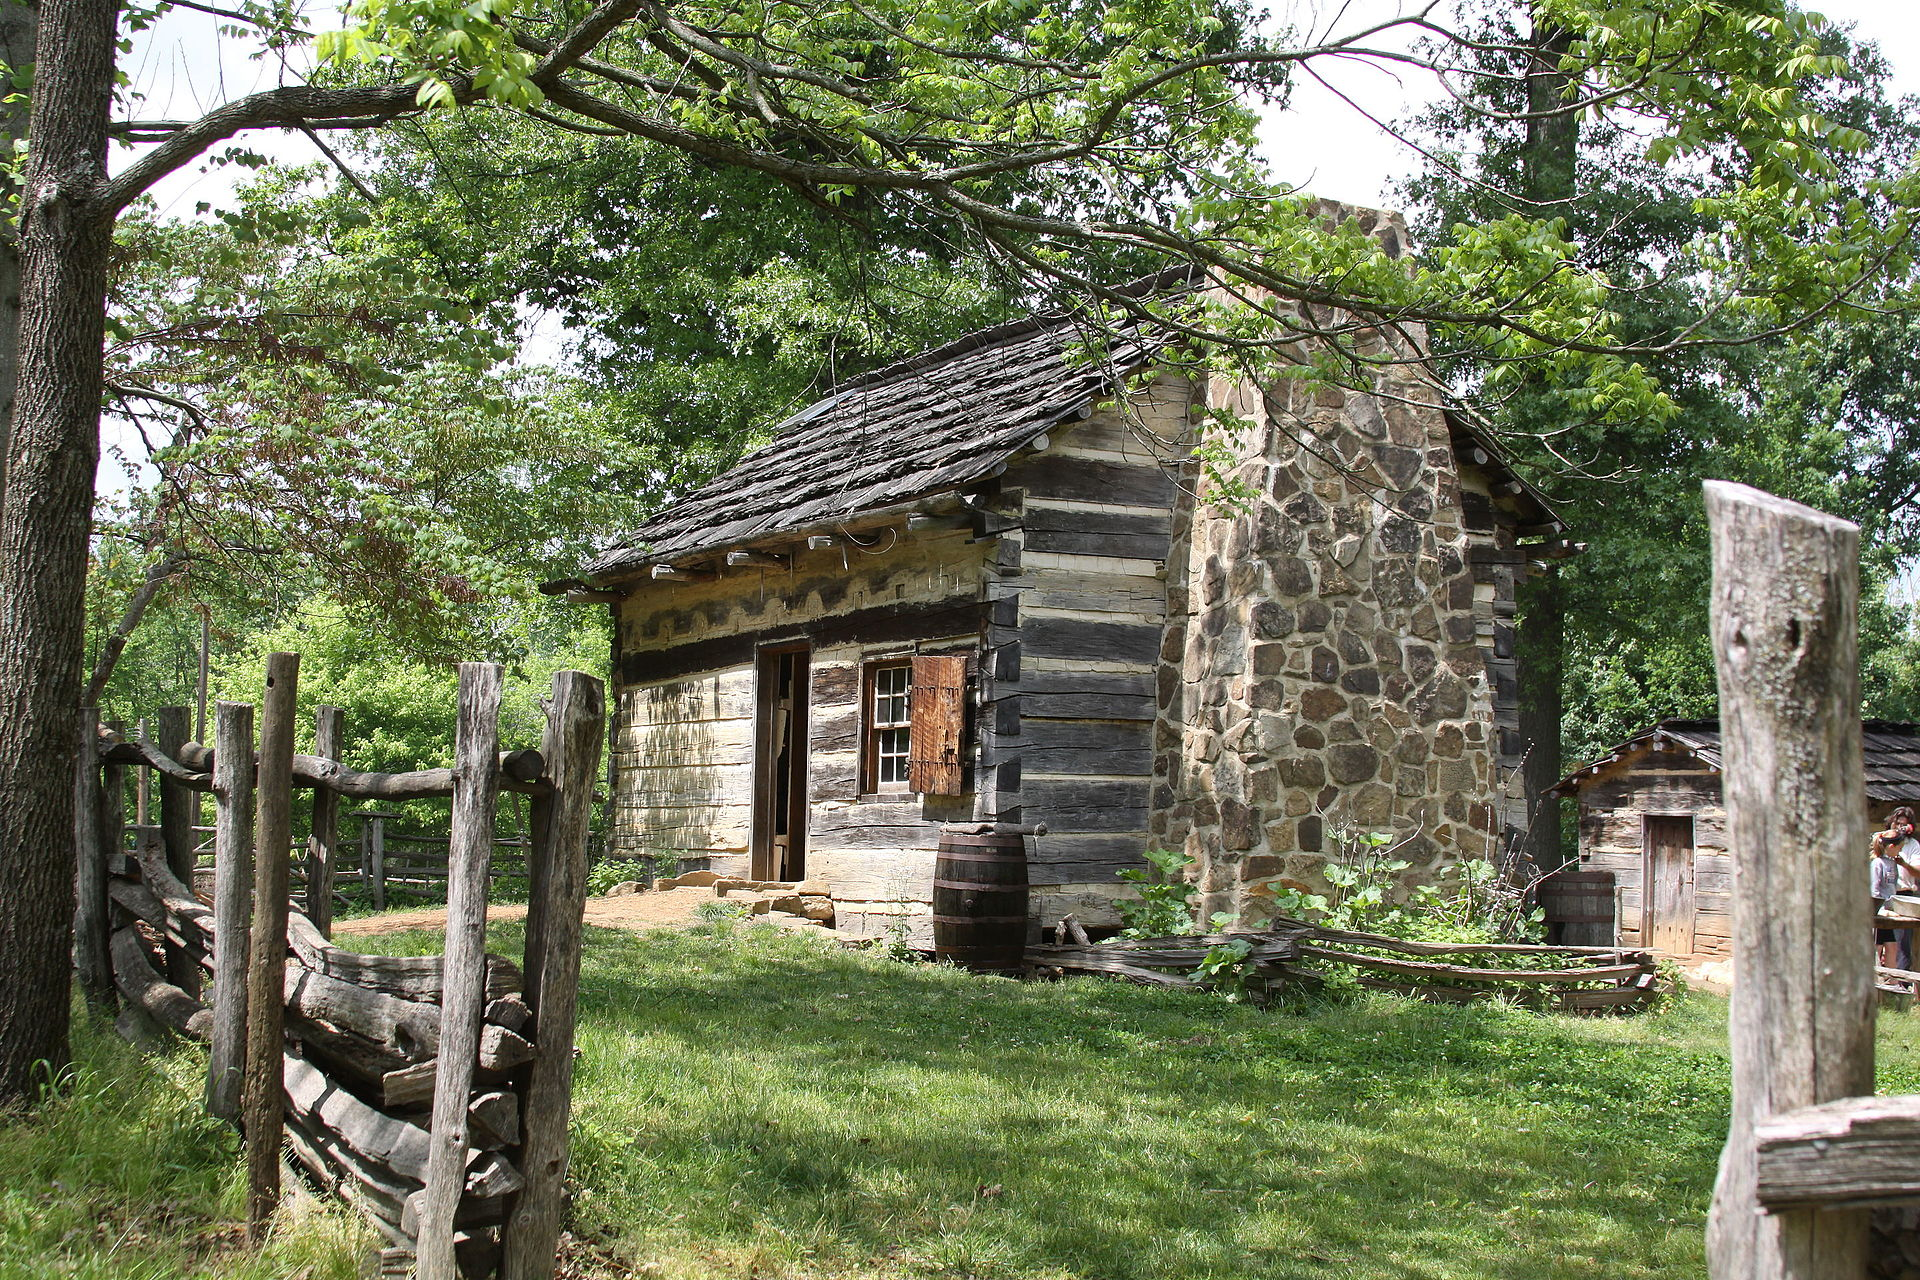 10 National Historic Landmarks To Visit In Indiana